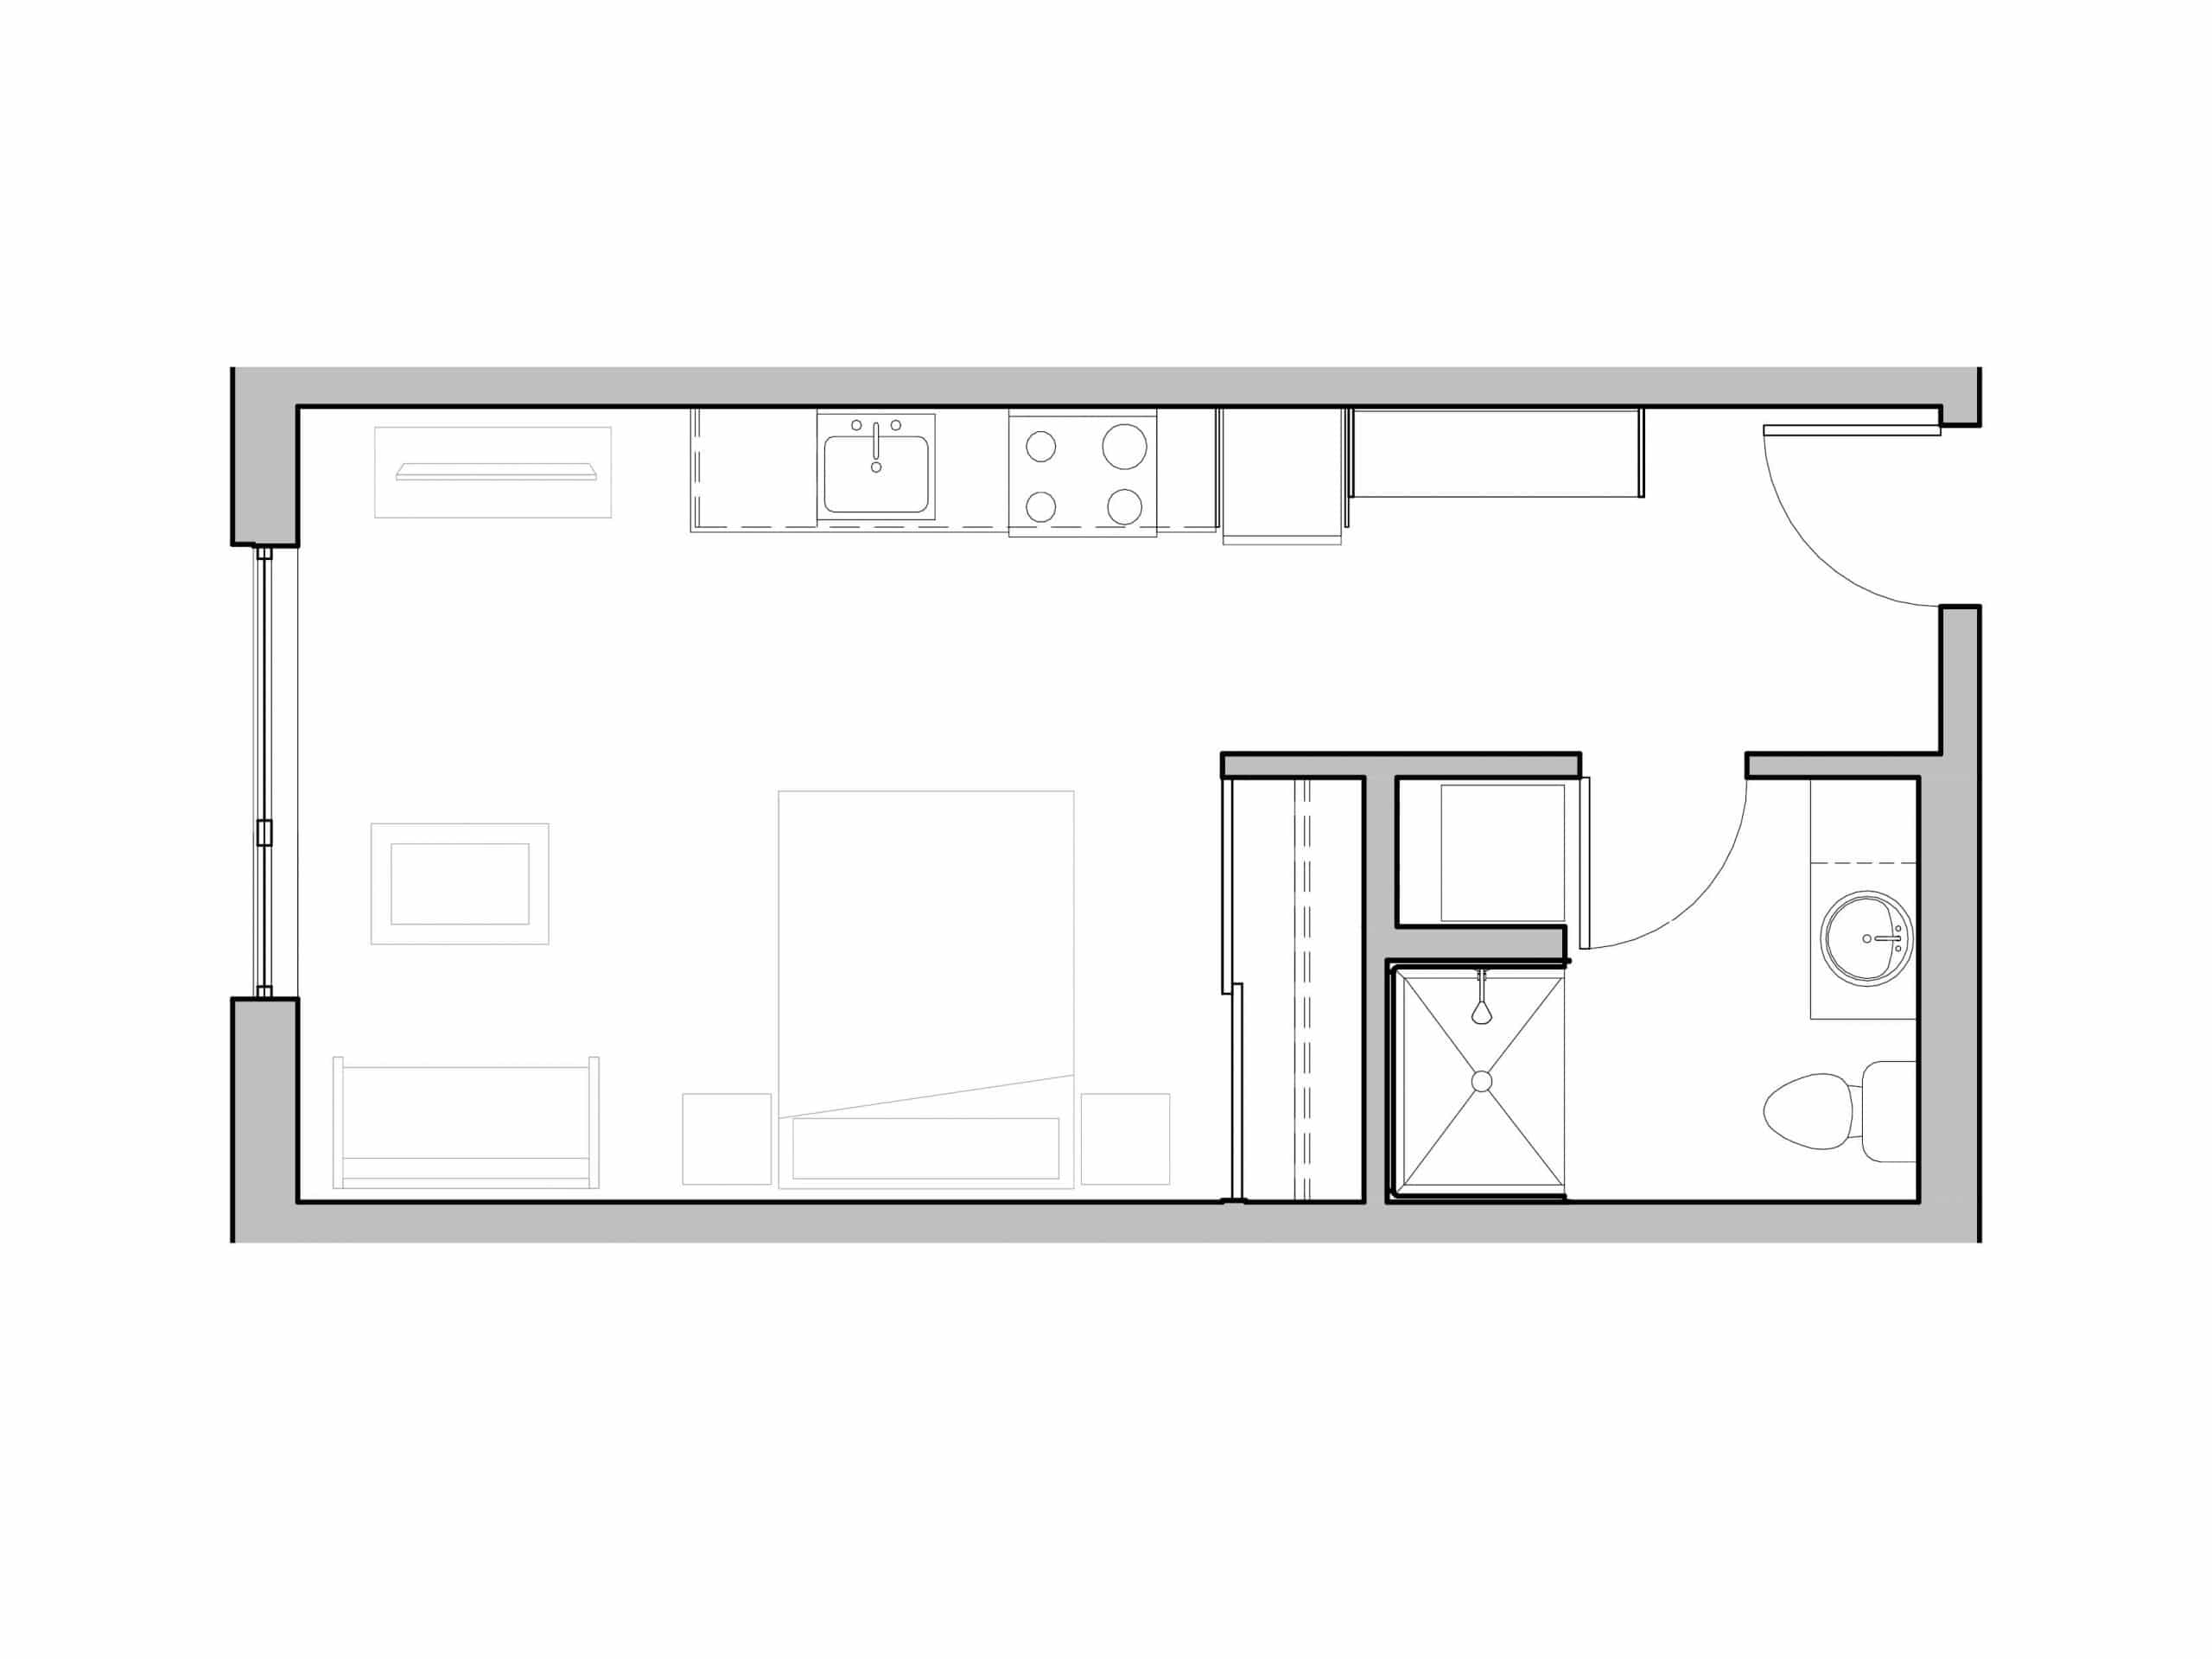 One Bath Studio with in-unit washer and dryer open floorplan at Seattle's Ivy at Interbay.